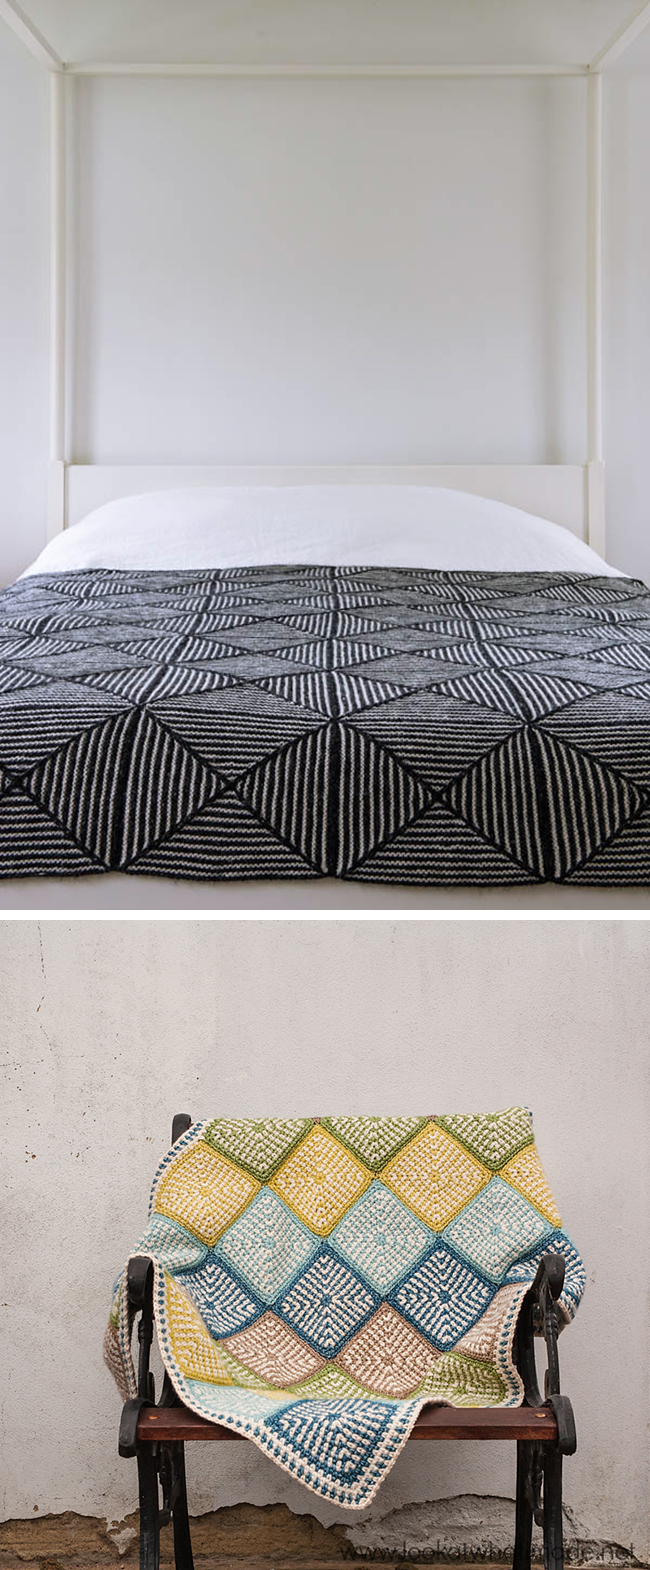 New Favorites: Graphic blankets